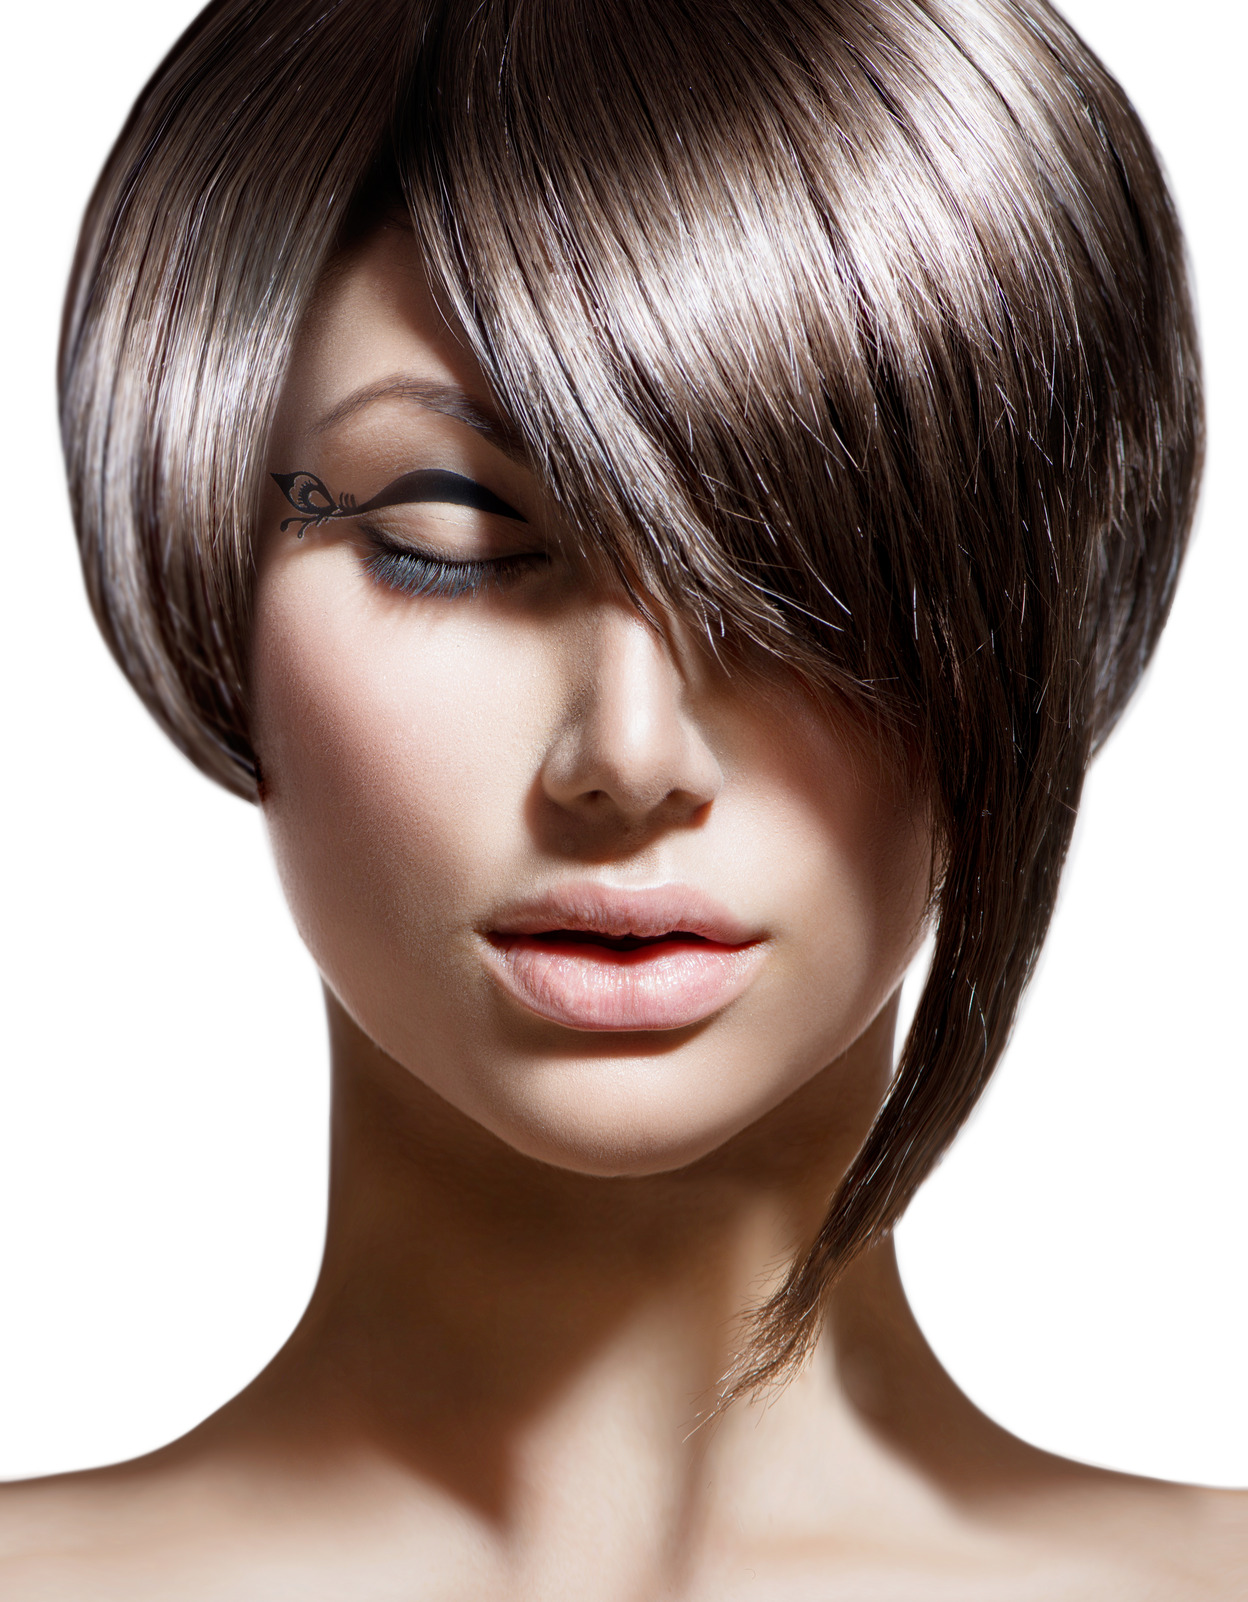 photodune-9923725-fashion-haircut-hairstyle-stylish-fringe-m.jpg